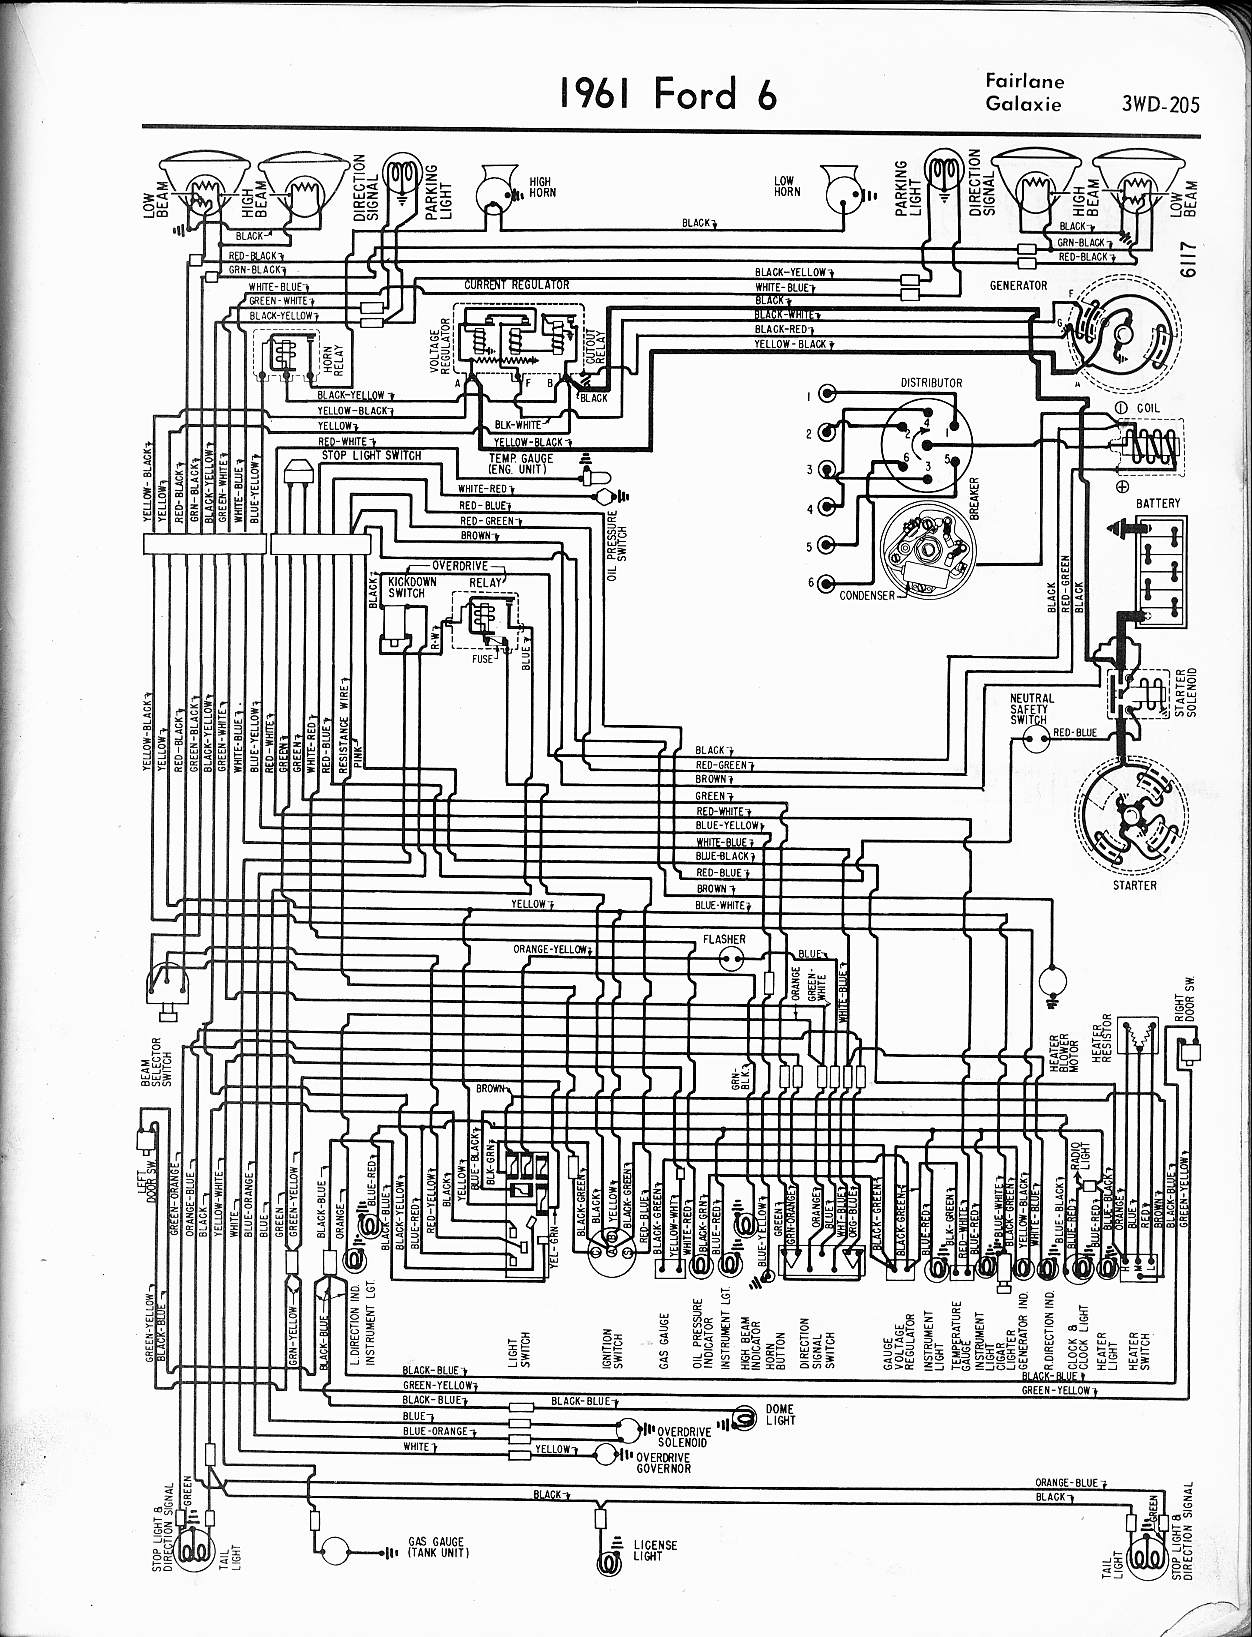 1968 Ford F100 Turn Signal Wiring Diagram - Wiring Diagram